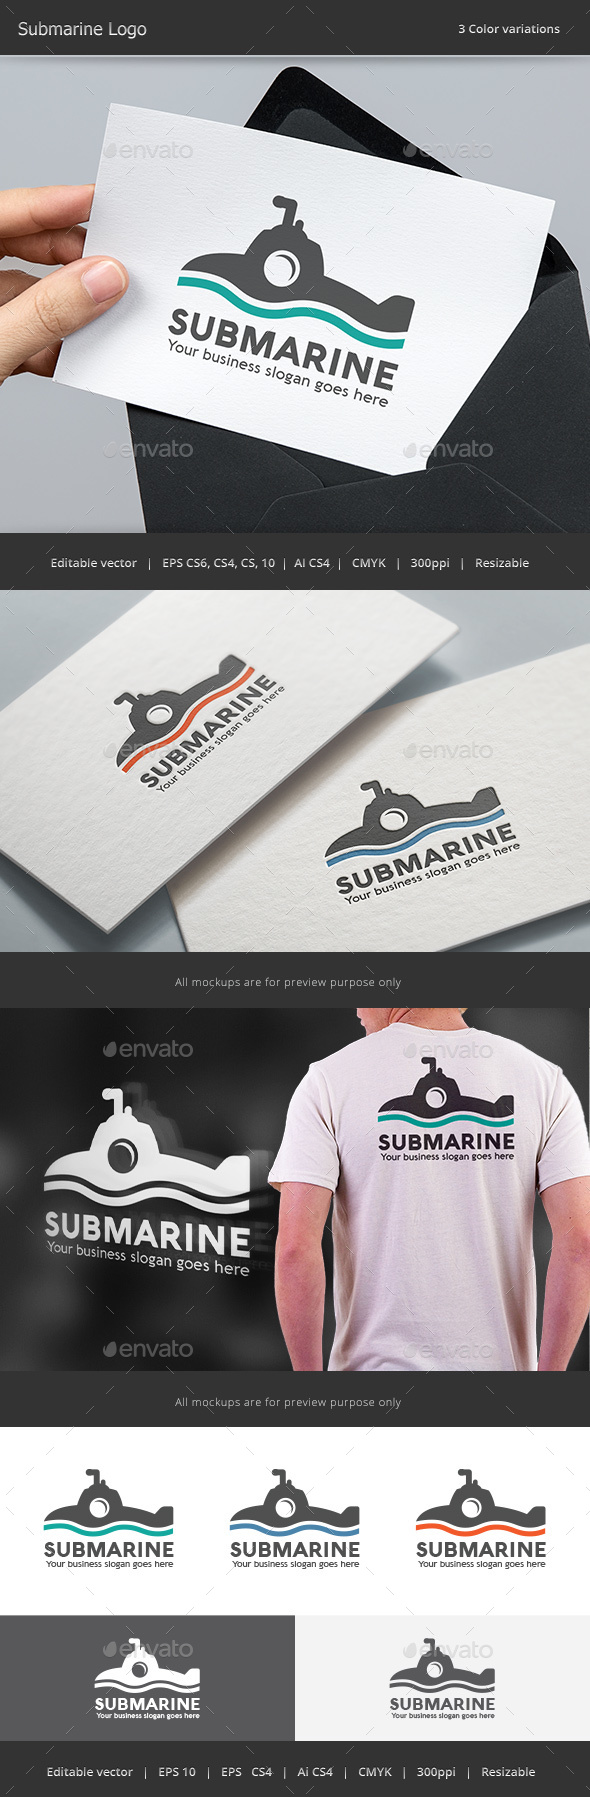 Submarine Logo - Objects Logo Templates